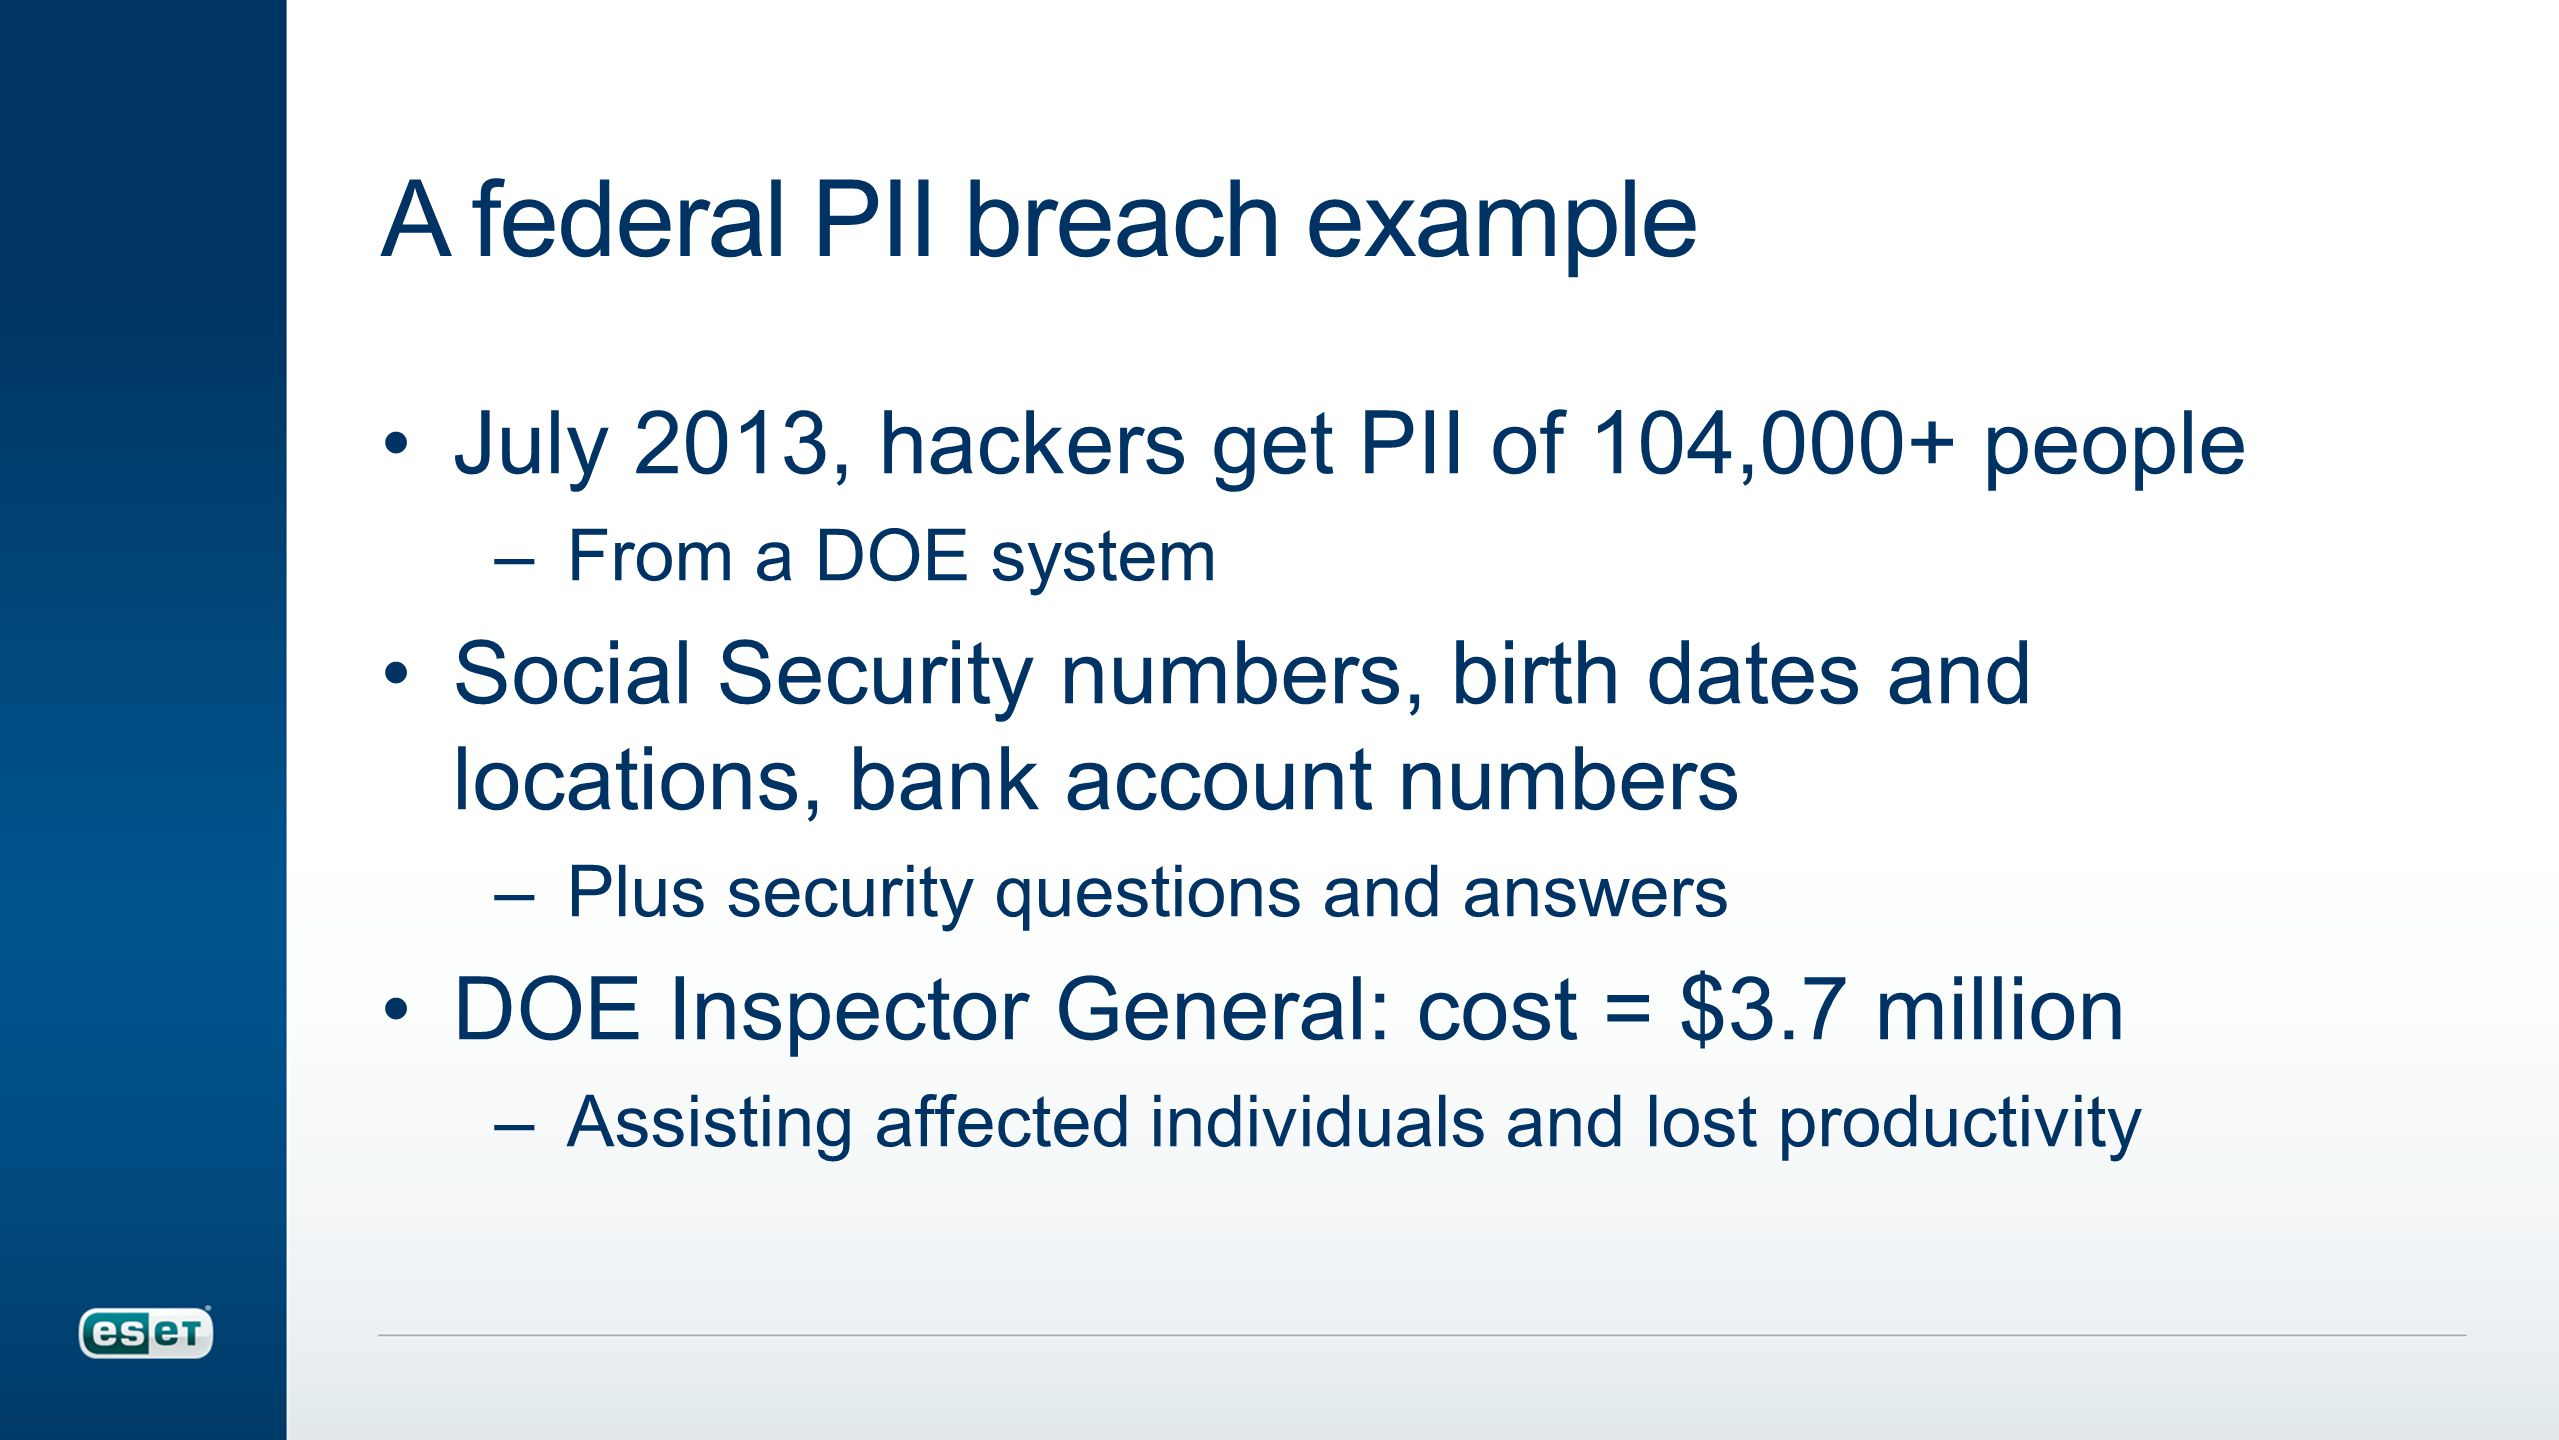 A federal PII breach example July 2013, hackers get PII of 104,000+ people –From a DOE system Social Security numbers, birth dates and locations, bank account numbers –Plus security questions and answers DOE Inspector General: cost = $3.7 million –Assisting affected individuals and lost productivity